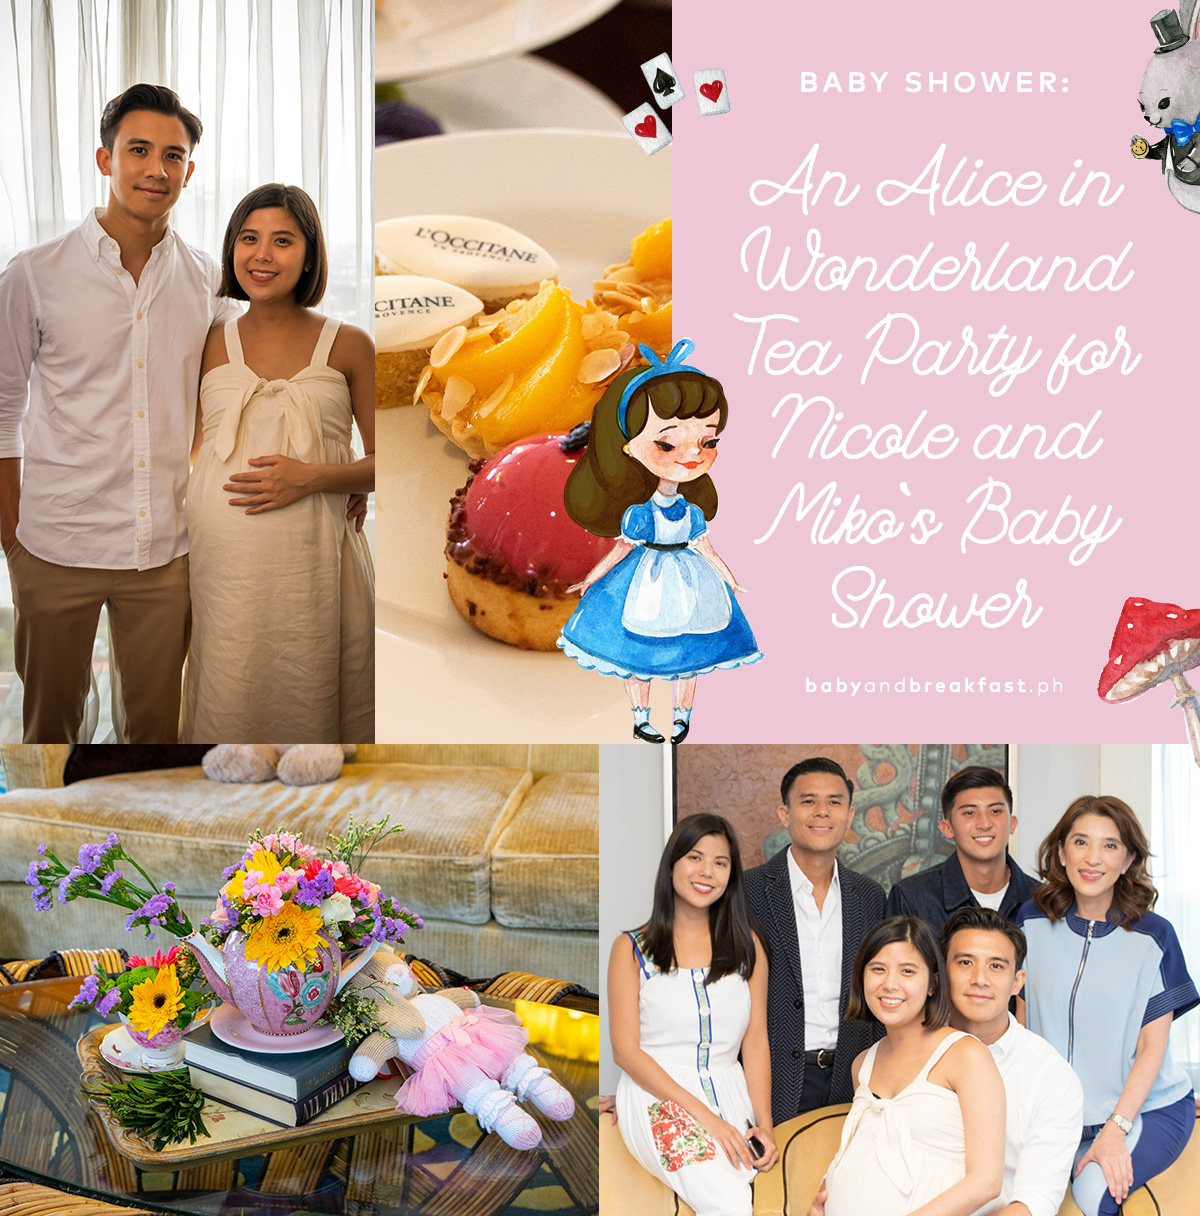 An Alice in Wonderland Tea Party for Nicole and Miko's Baby Shower